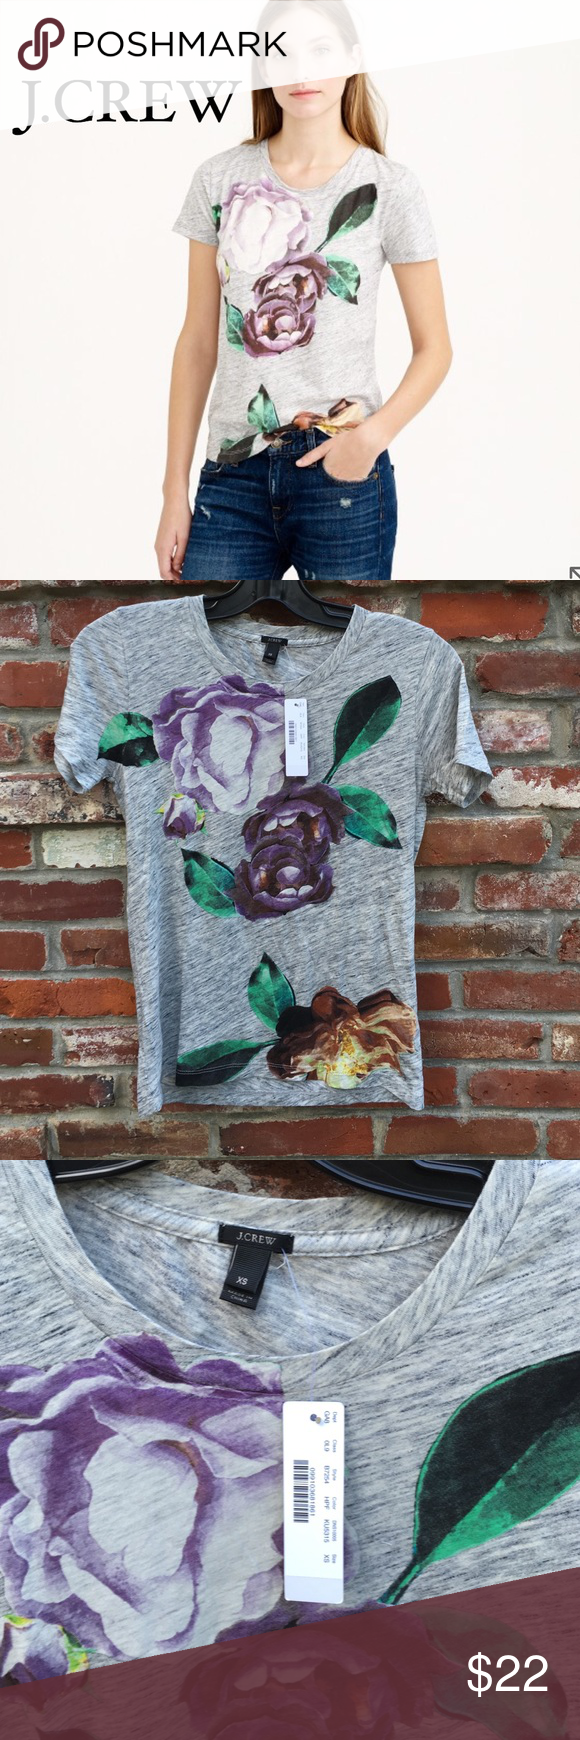 """J.Crew Exploded Floral Tee We started with a supersoft heathery T-shirt and used a special digital printing technique, so the photo-realistic blooms are extra crisp (just how we like 'em). BNWT NEVER WORN Cotton. Machine wash. Body length 25 1/2"""". J. Crew Tops Tees - Short Sleeve"""